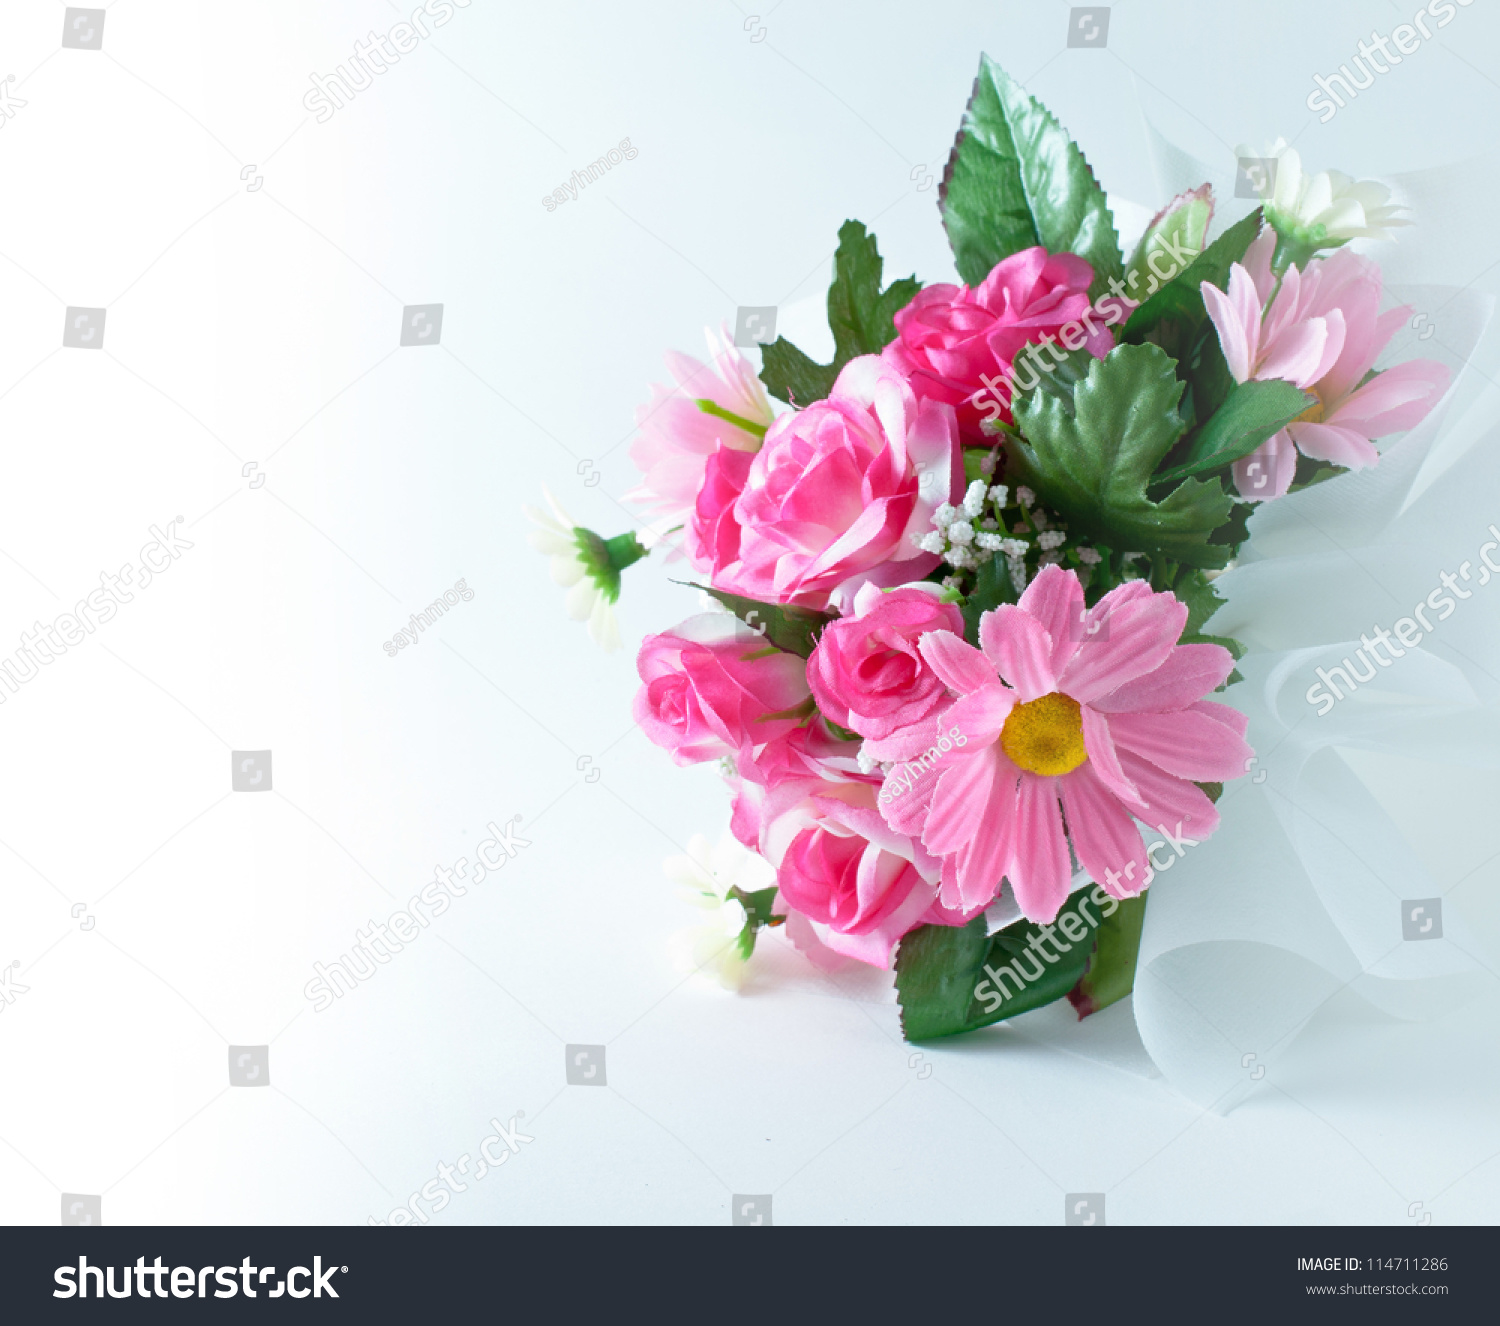 Bouquet fake flowers stock photo royalty free 114711286 shutterstock bouquet of fake flowers izmirmasajfo Images